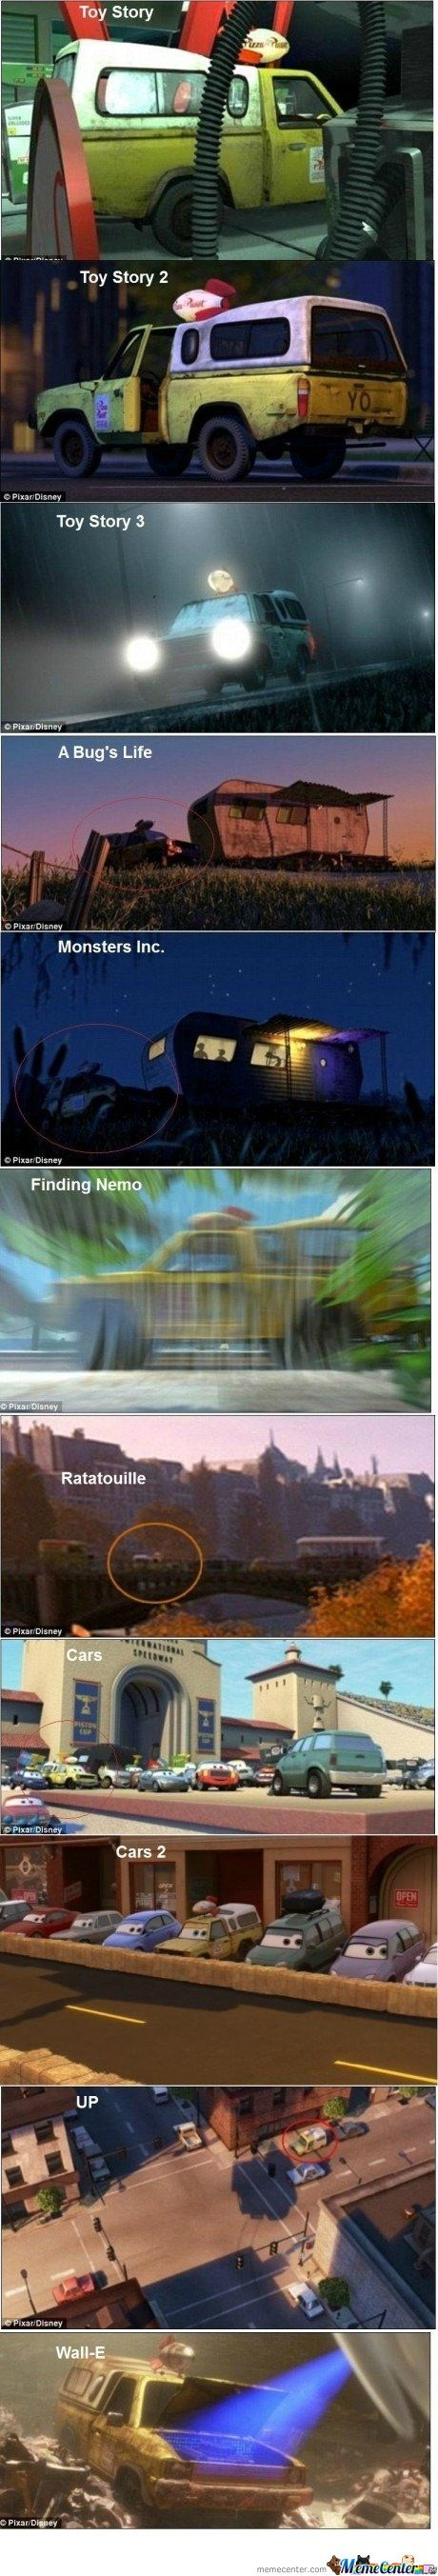 I Bet You Never Noticed This